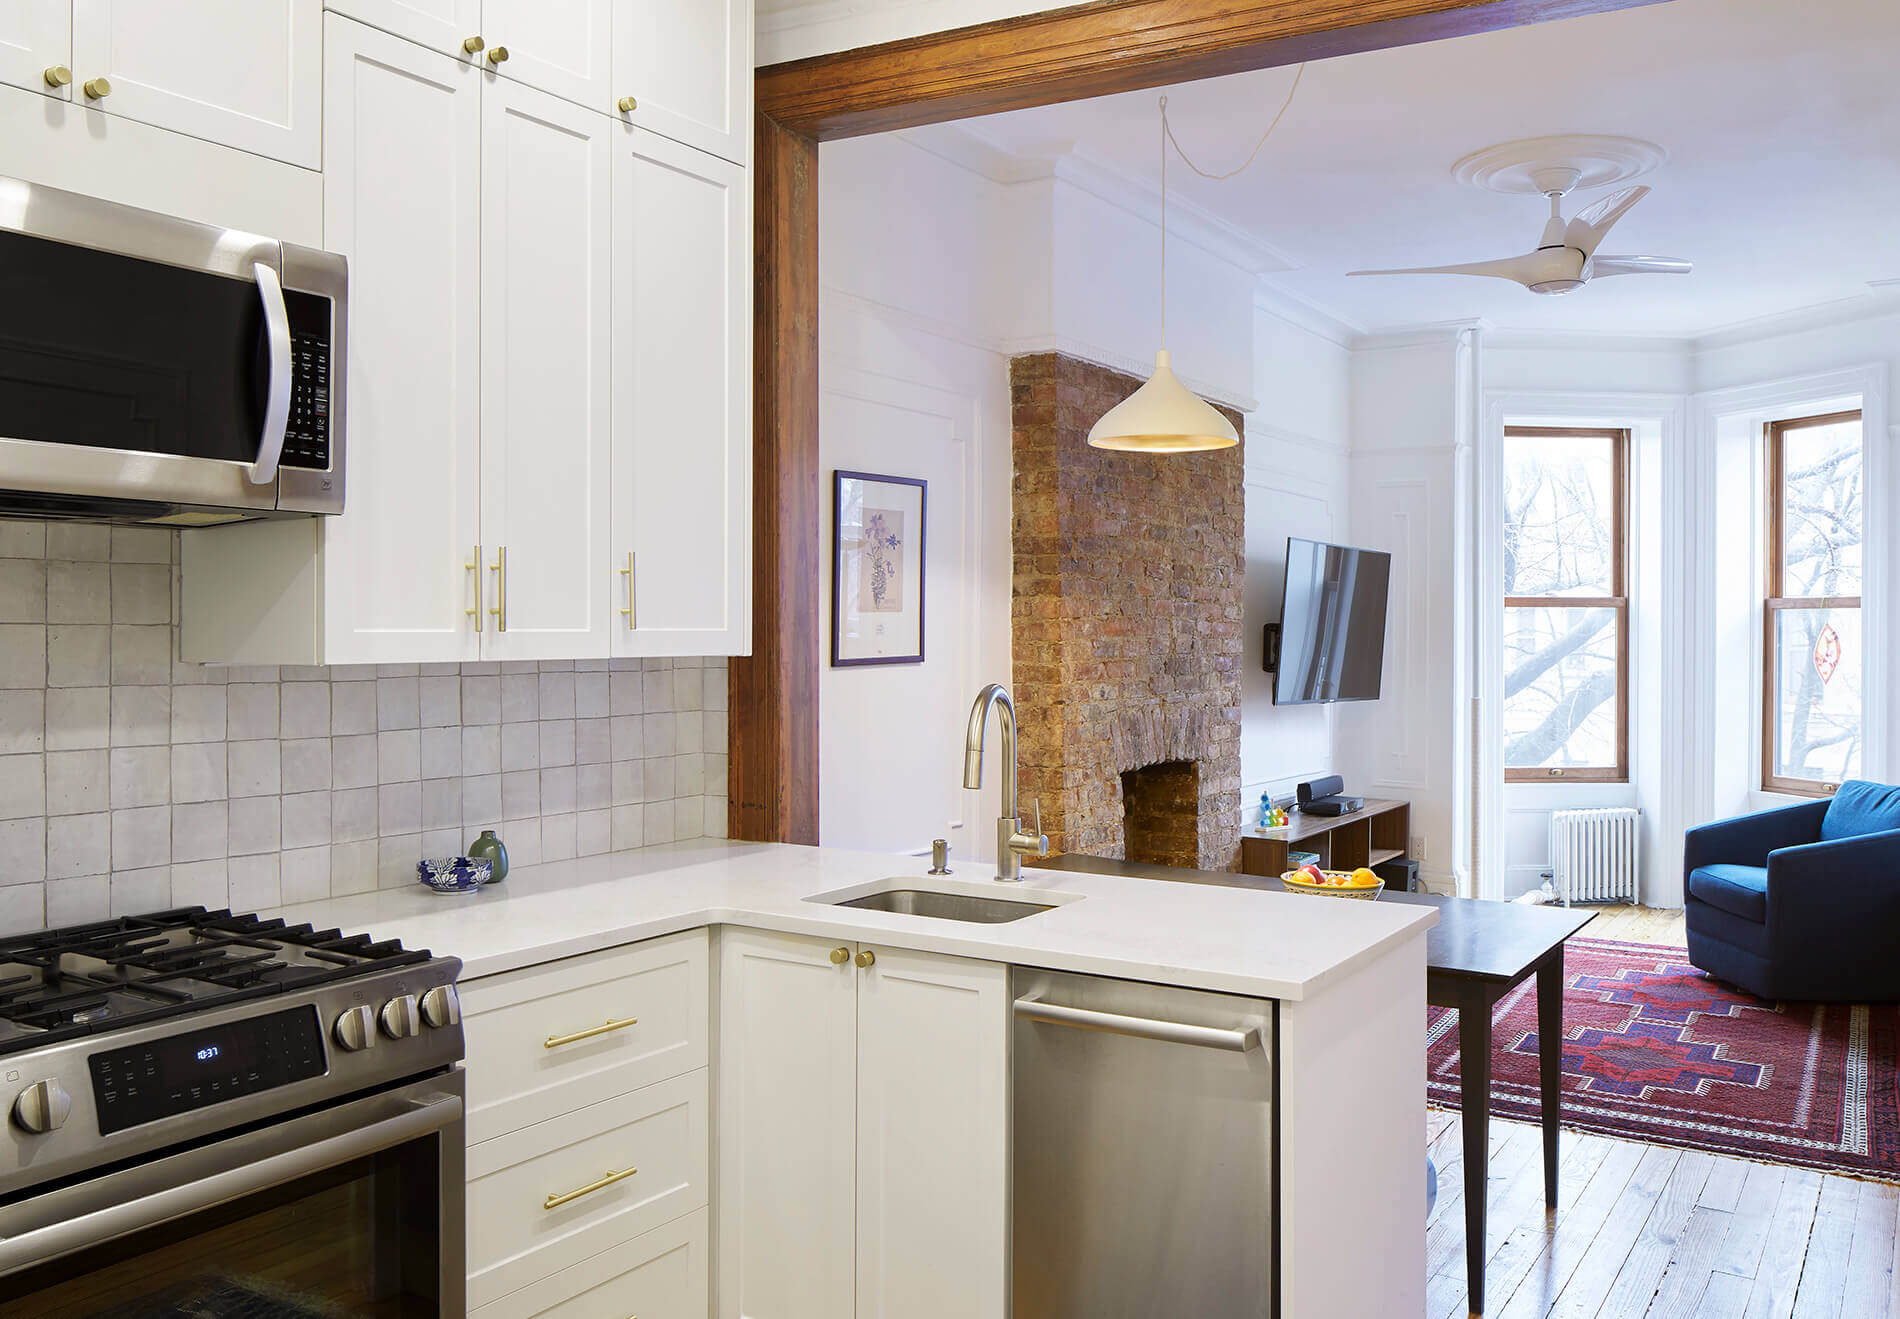 The Insider Light Low Cost Renovation Turns Park Slope Railroad Apartment Into Sweet Family Home Brownstoner